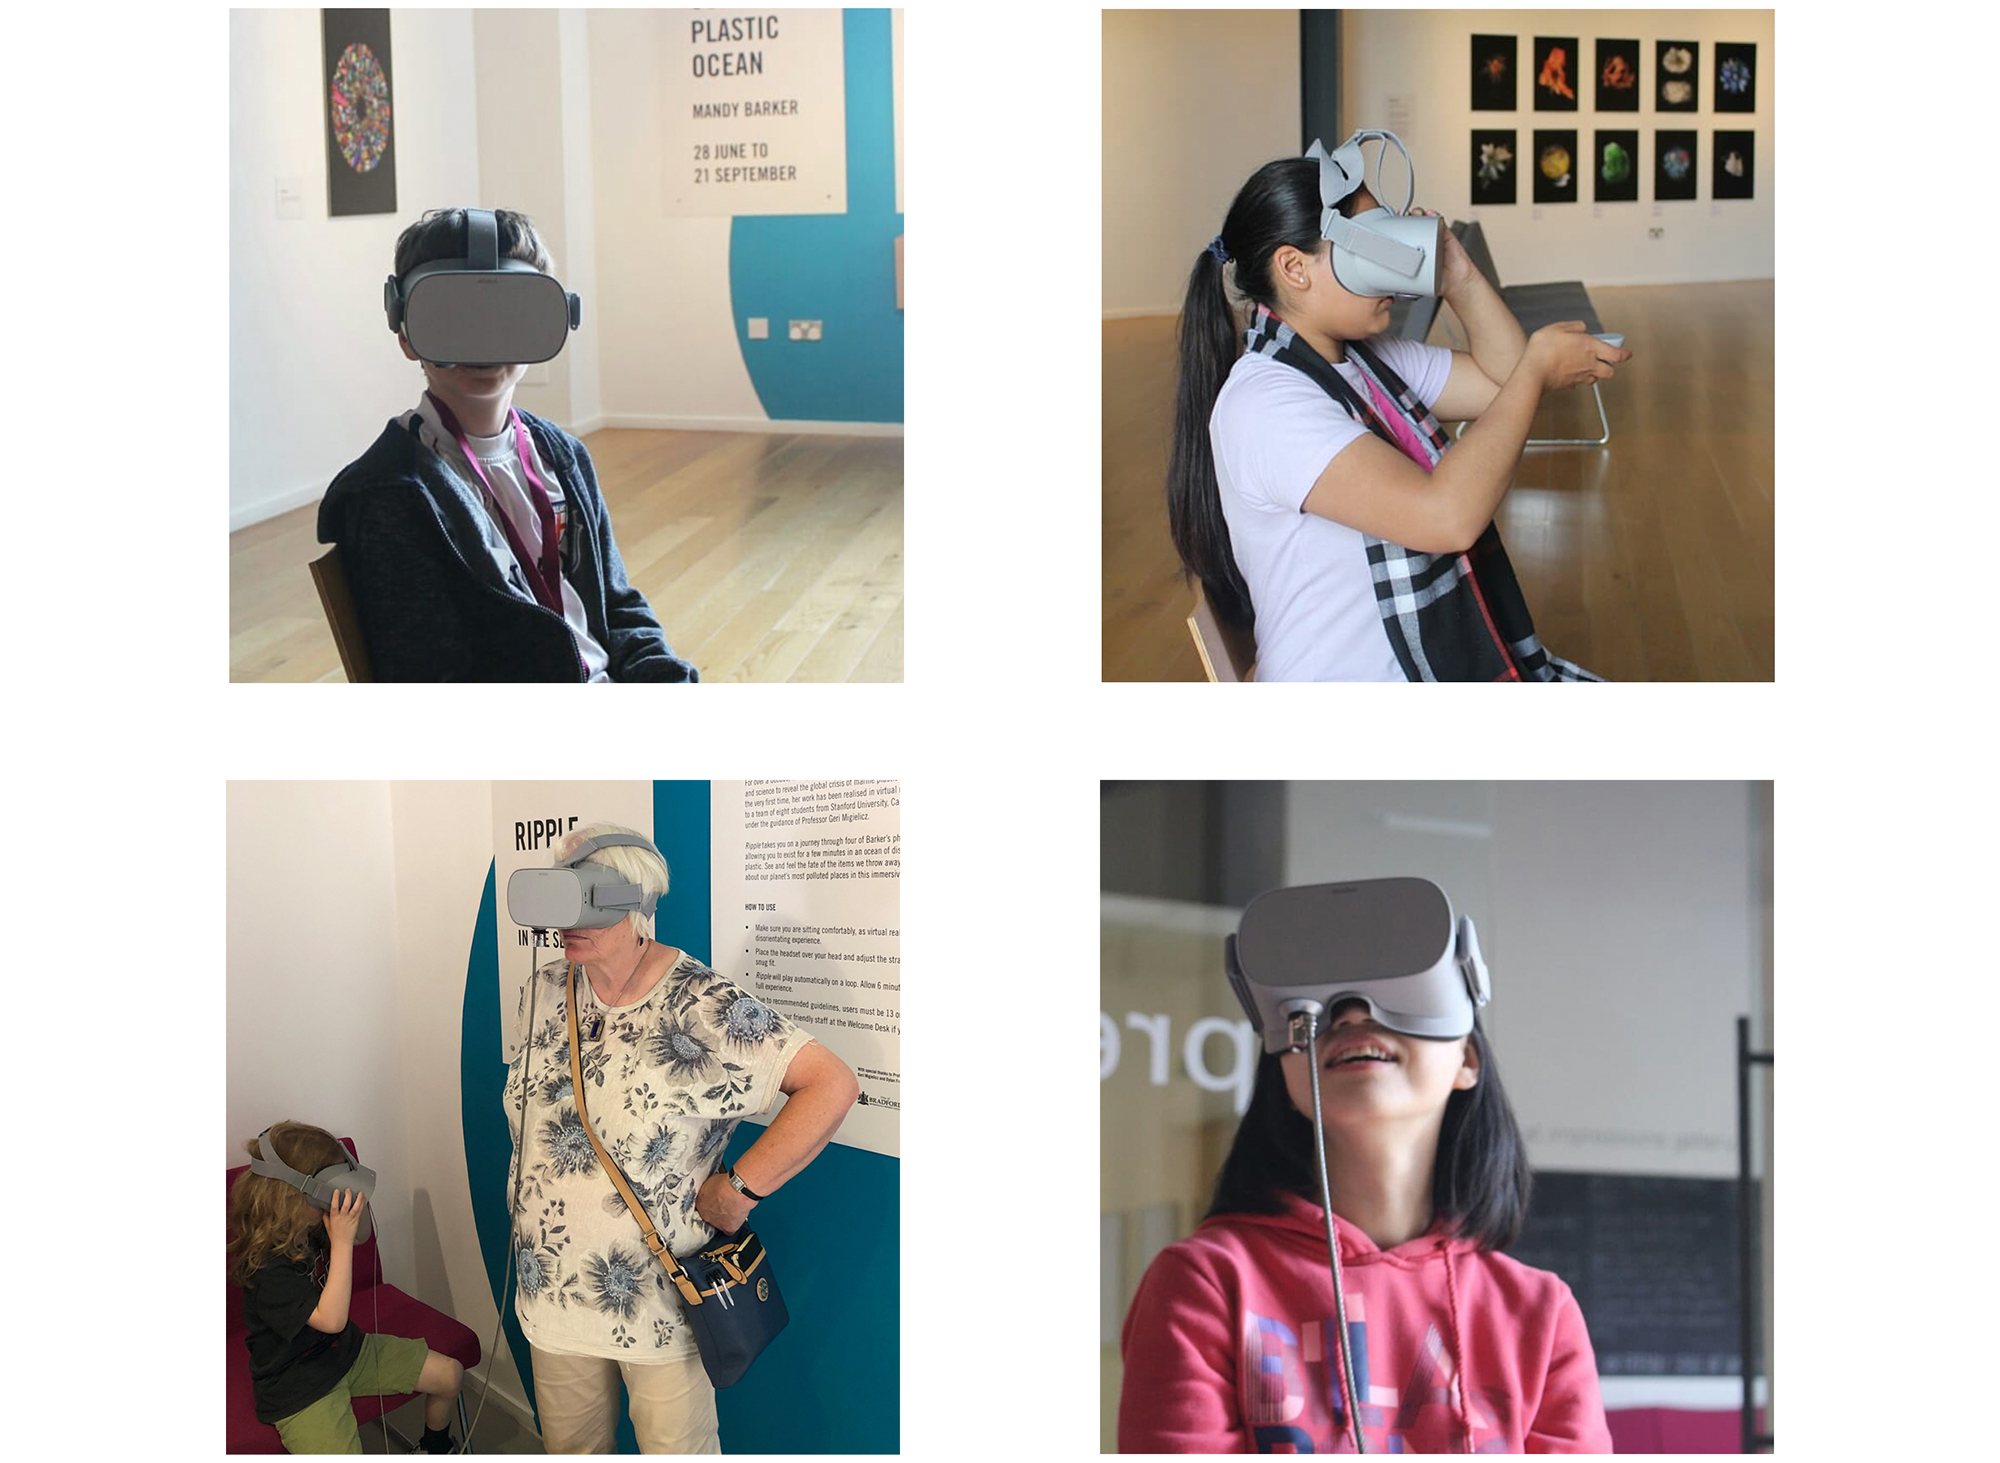 The virtual reality experience was first experienced as part of the exhibition, OUR PLASTIC OCEAN, at Impressions Gallery, England from 28 June – 21 September 2019 .